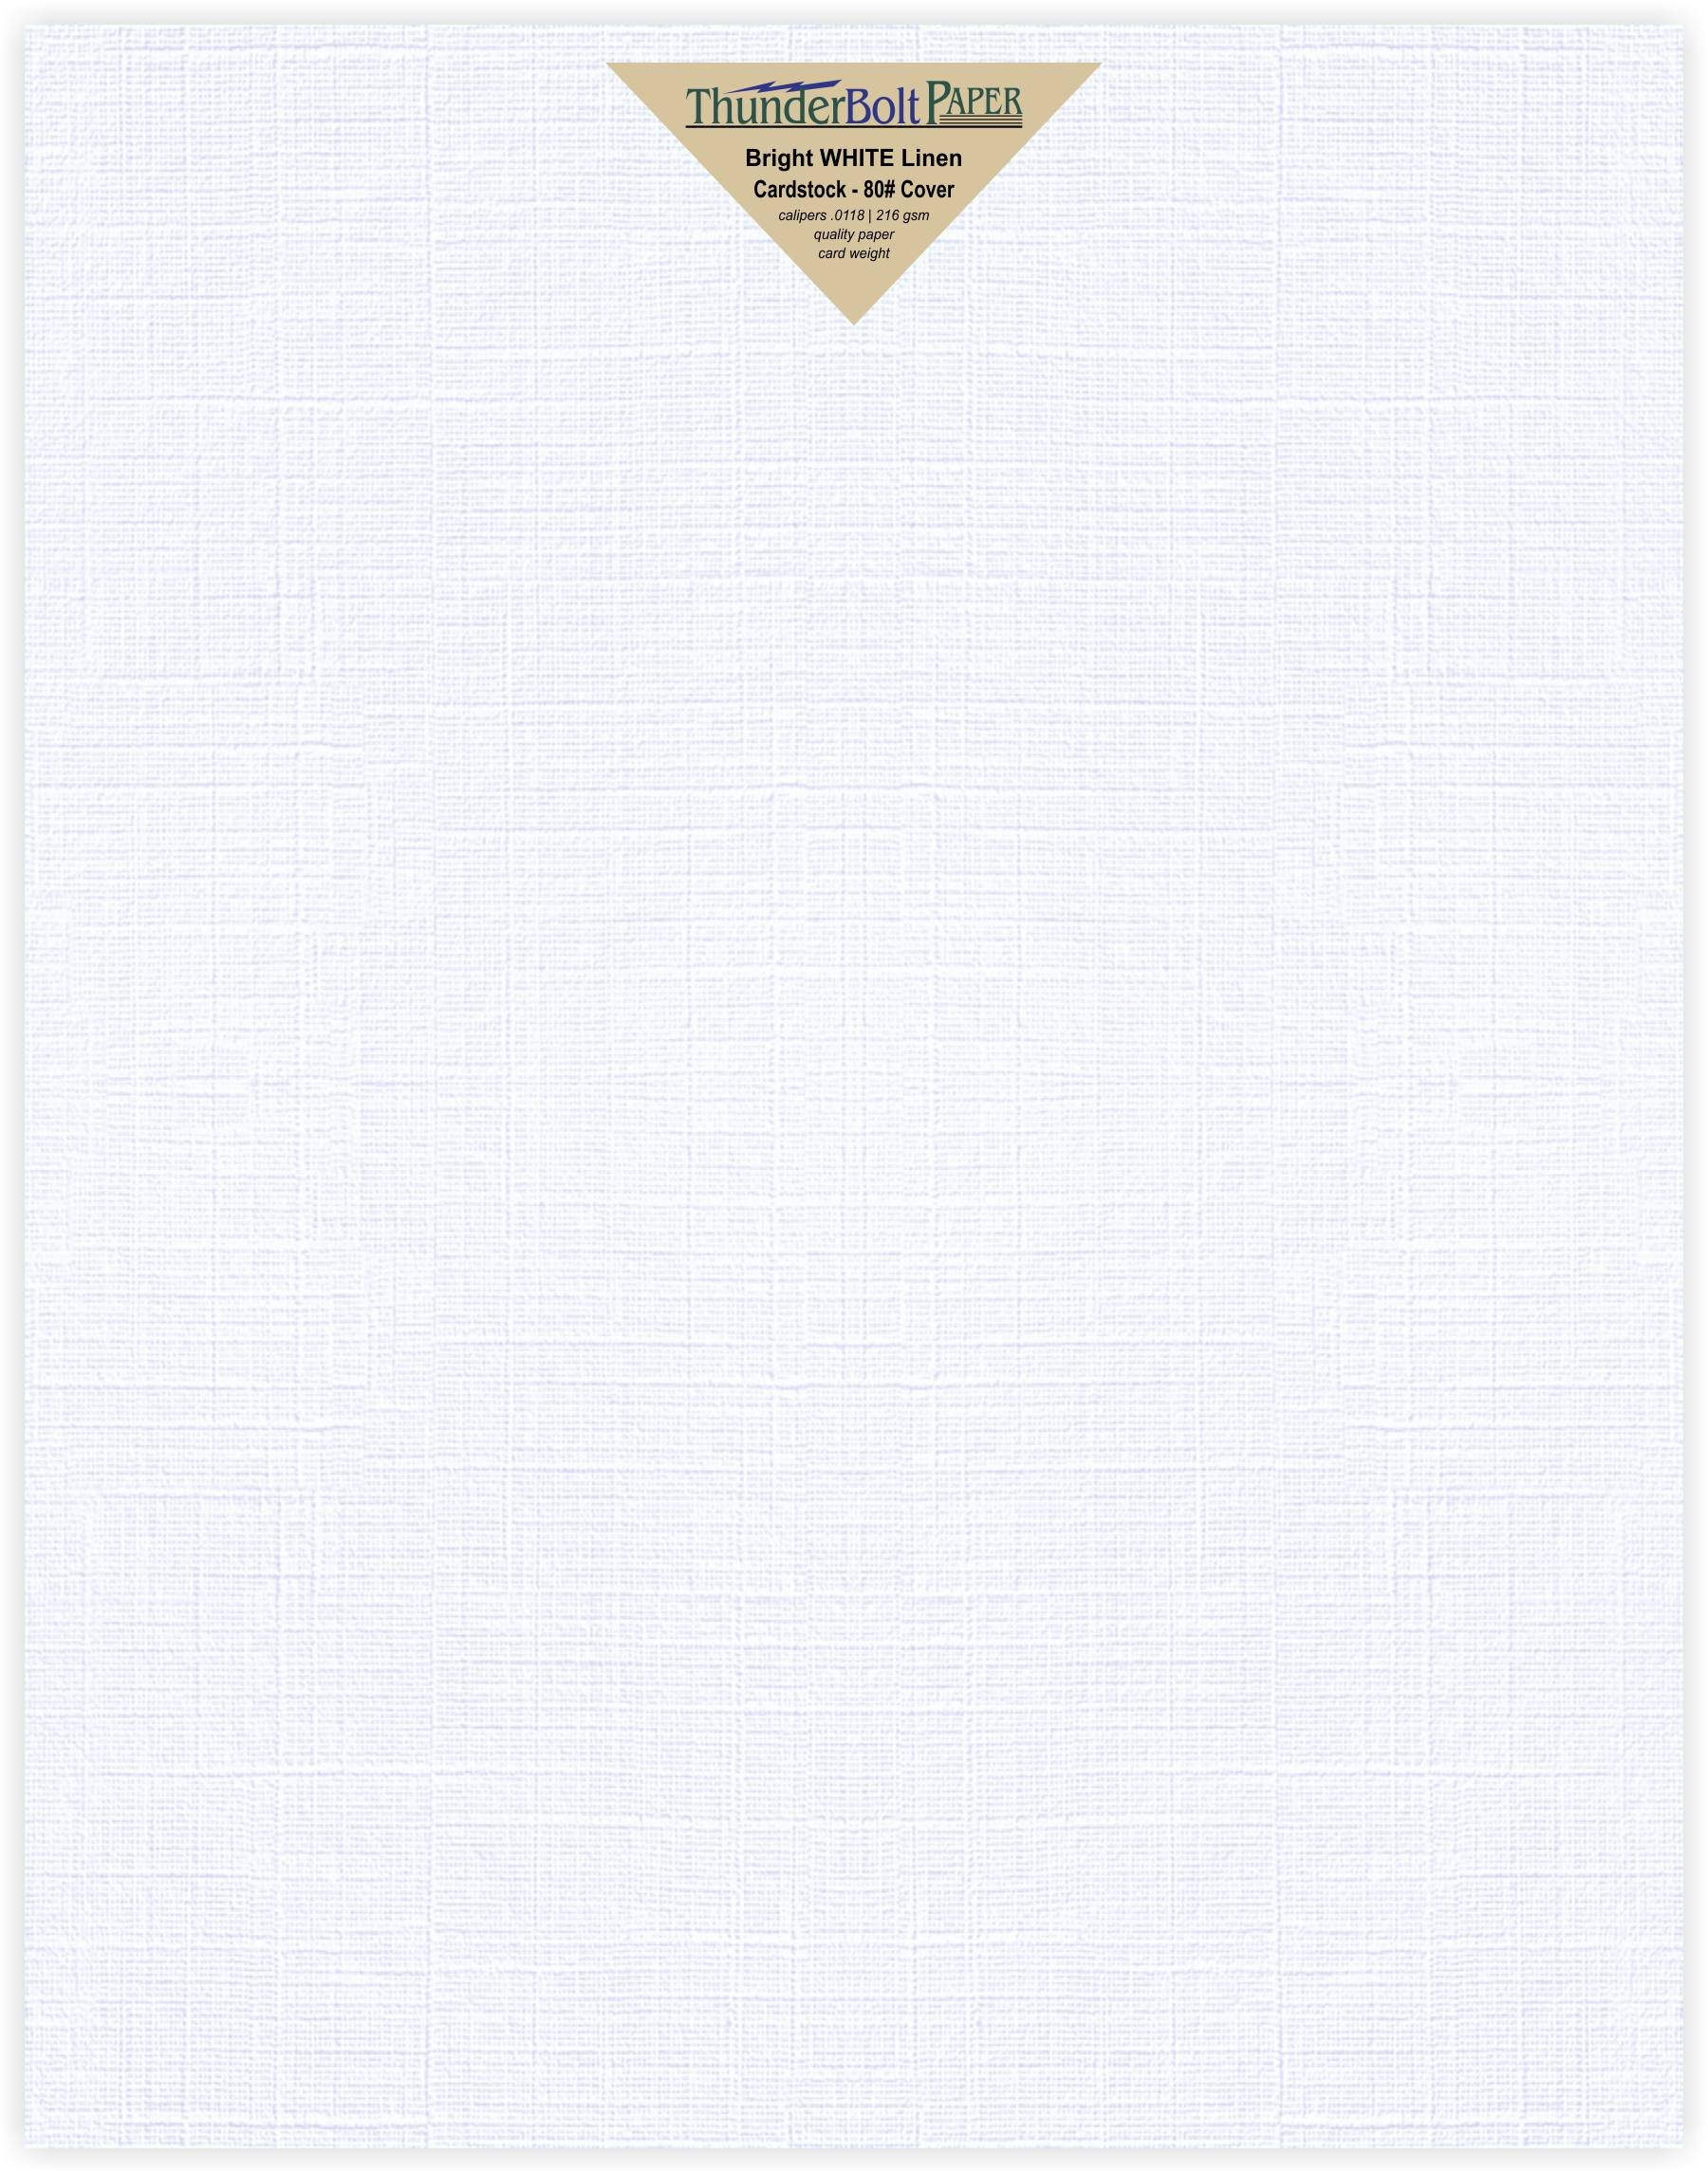 25 Bright White Linen 80# Cover Paper Sheets - 11'' X 14'' (11X14 Inches) Scrapbook Picture-Frame Size - 80 lb/pound Card Weight - Fine Linen Textured Finish Cardstock